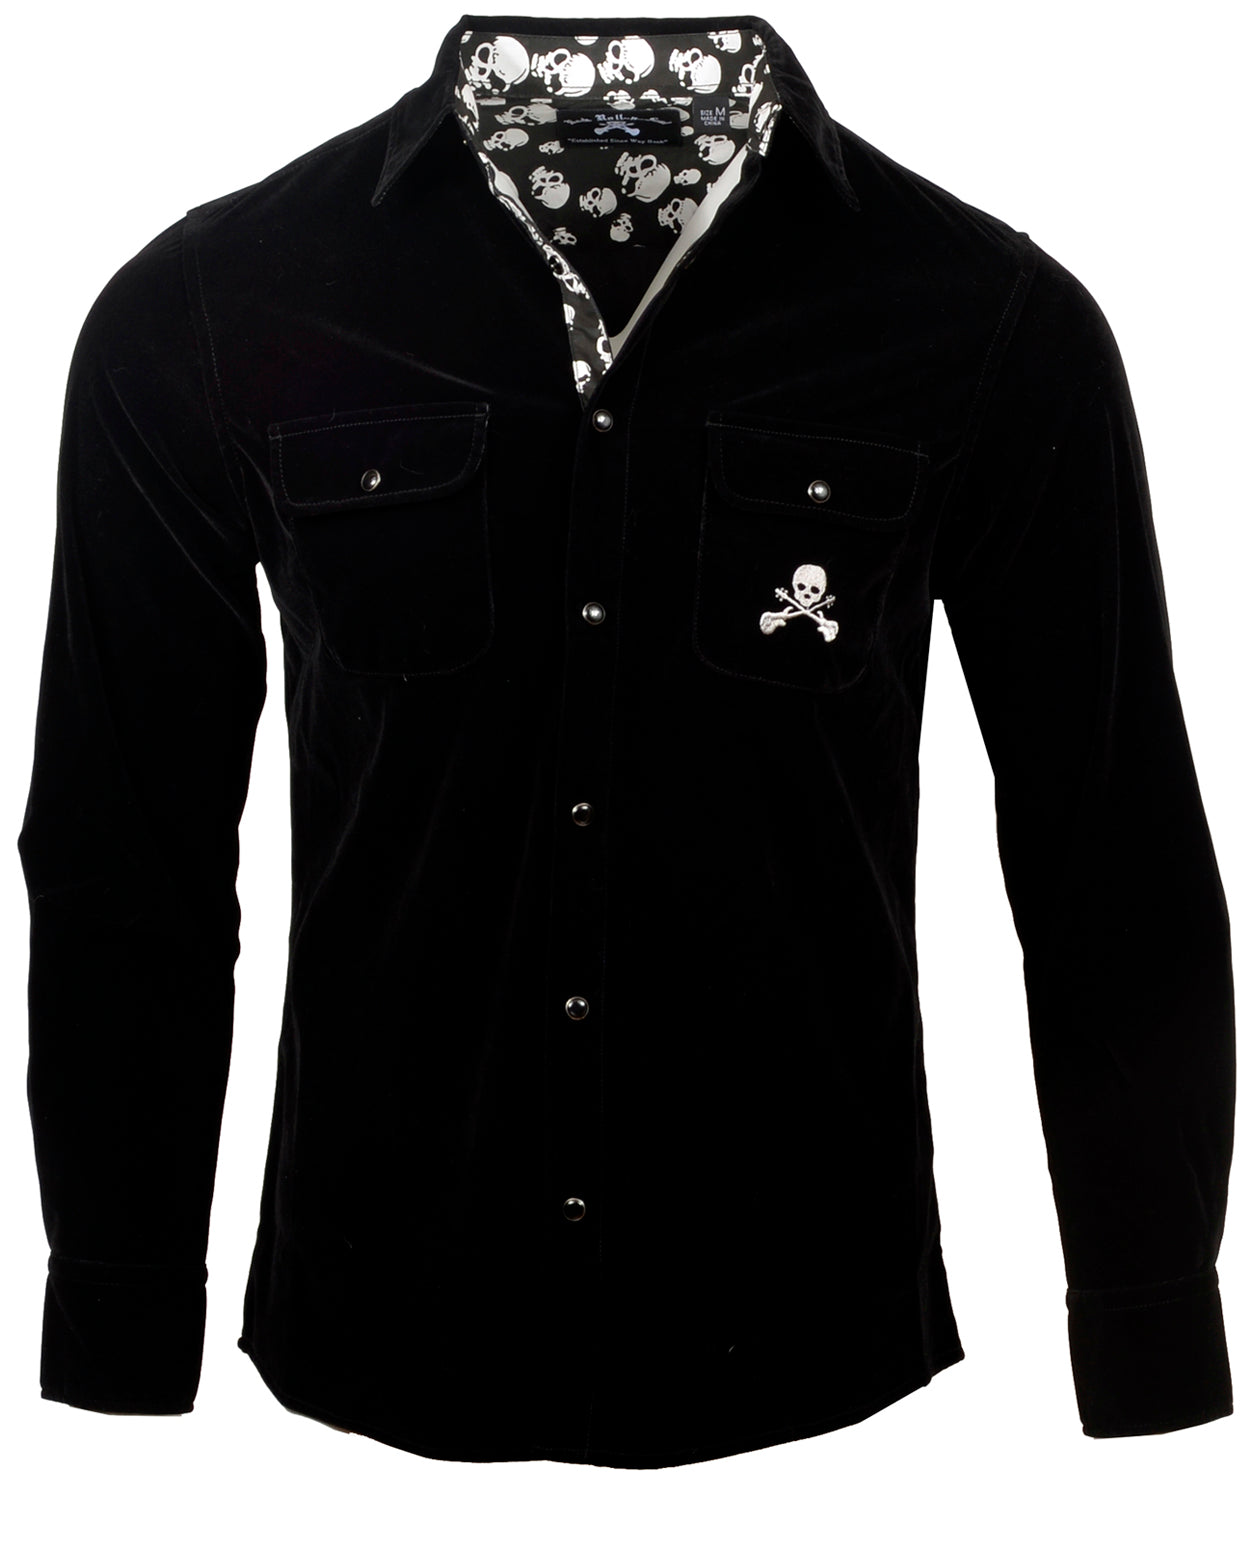 Men's Casual Fashion Button Up Shirt - Black Suede Shoes by Rock Roll n Soul